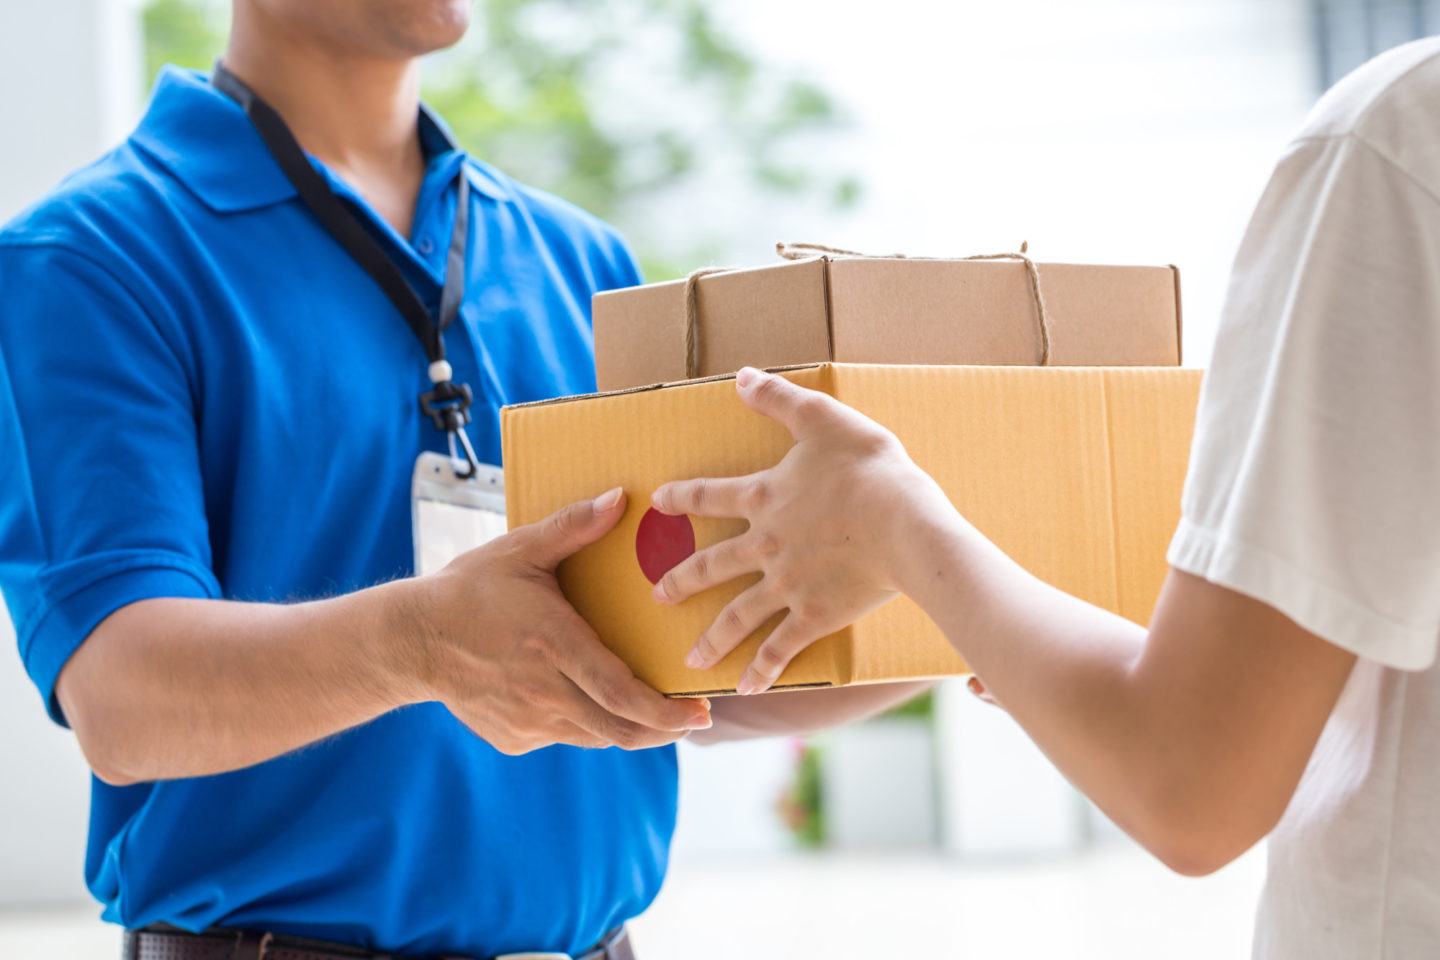 Better Business: How to Enhance the Consumer Experience with Direct to Consumer Packaging